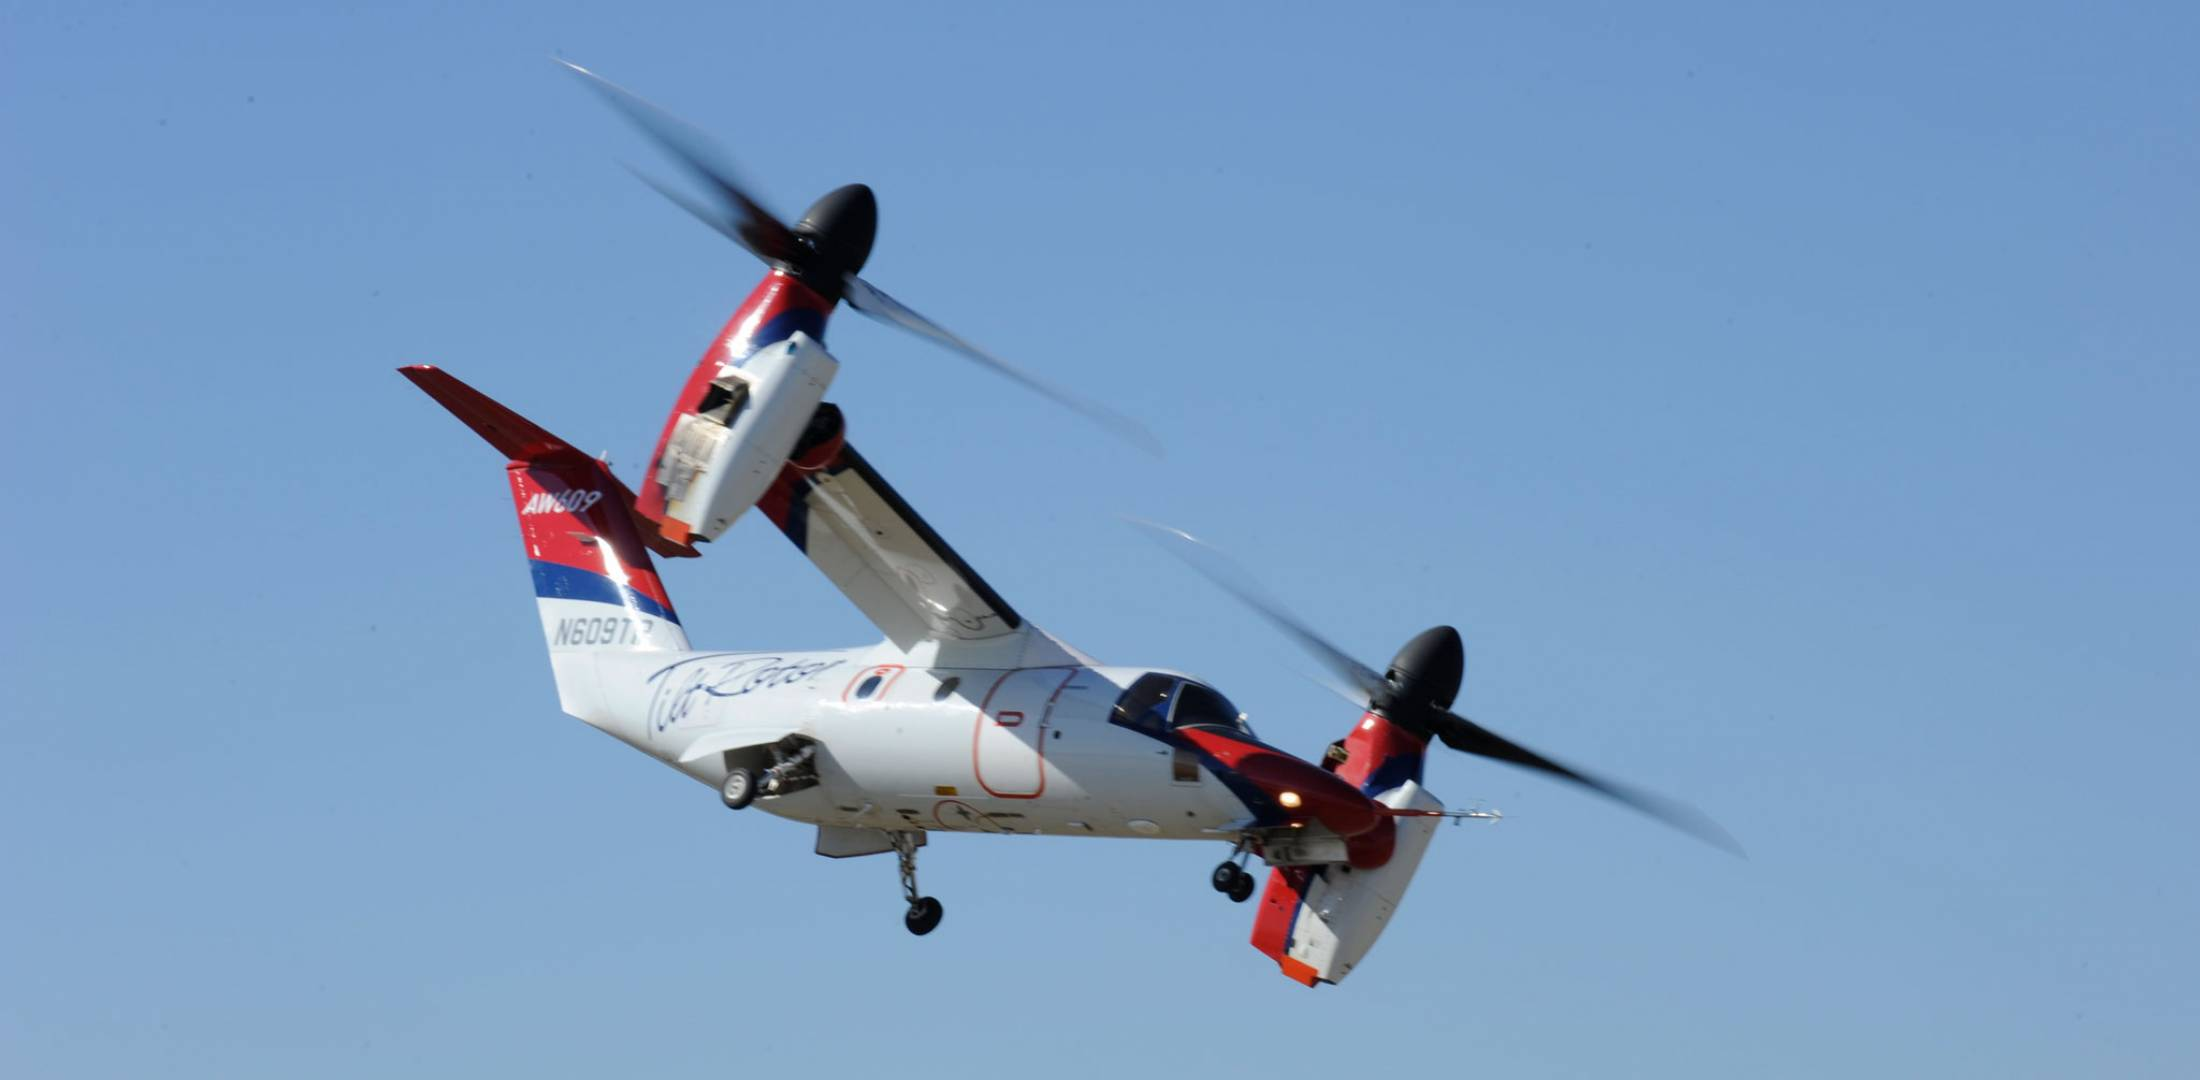 AW609 in flight